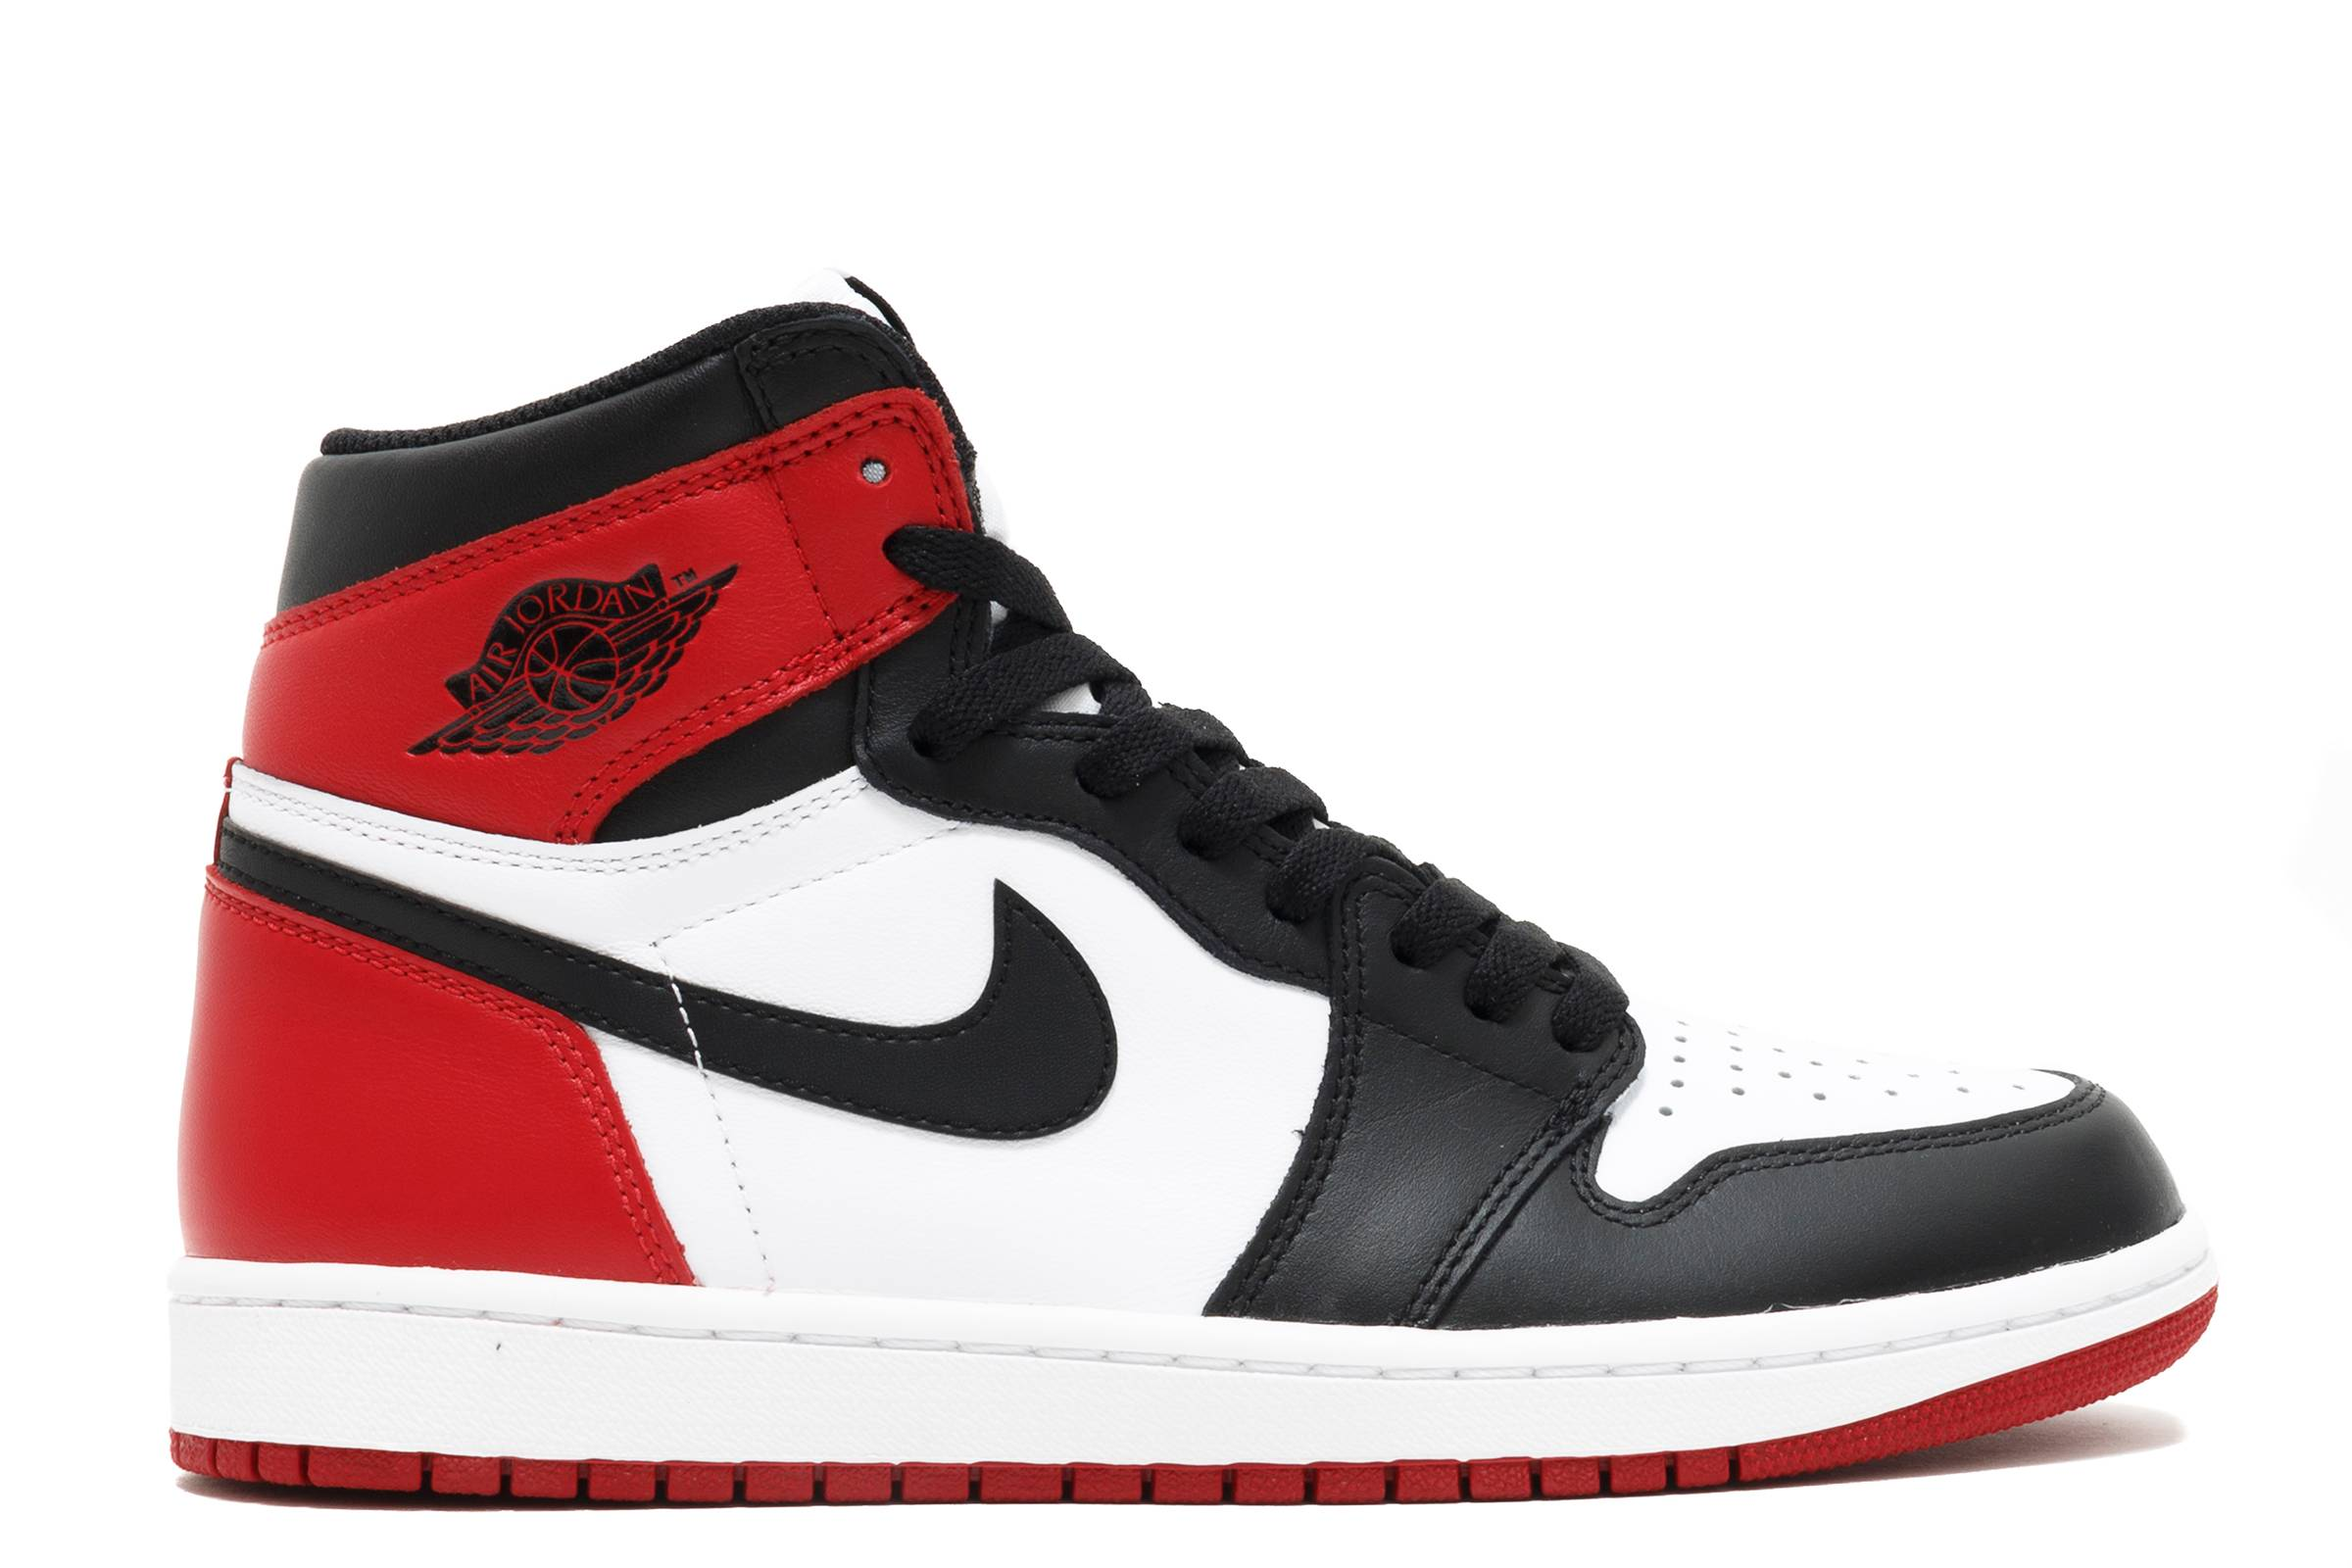 b38deacba42dc The One That Started It All  A History of the Jordan 1 - Jordan 1 ...